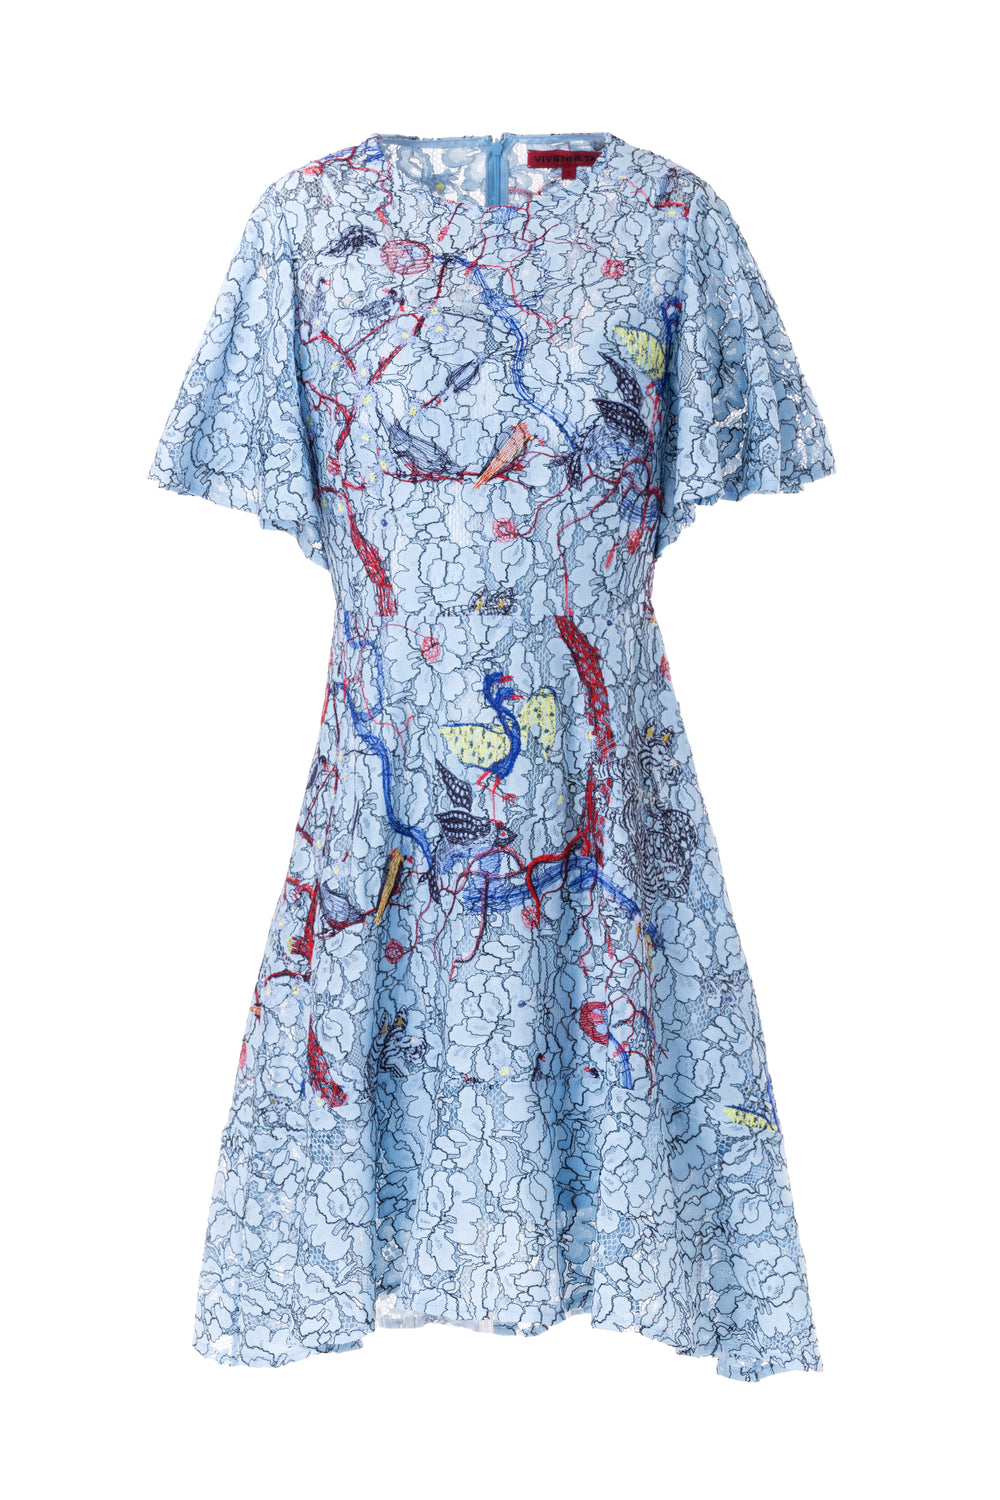 Womens Blue Multi Fantasyland Lace Dress